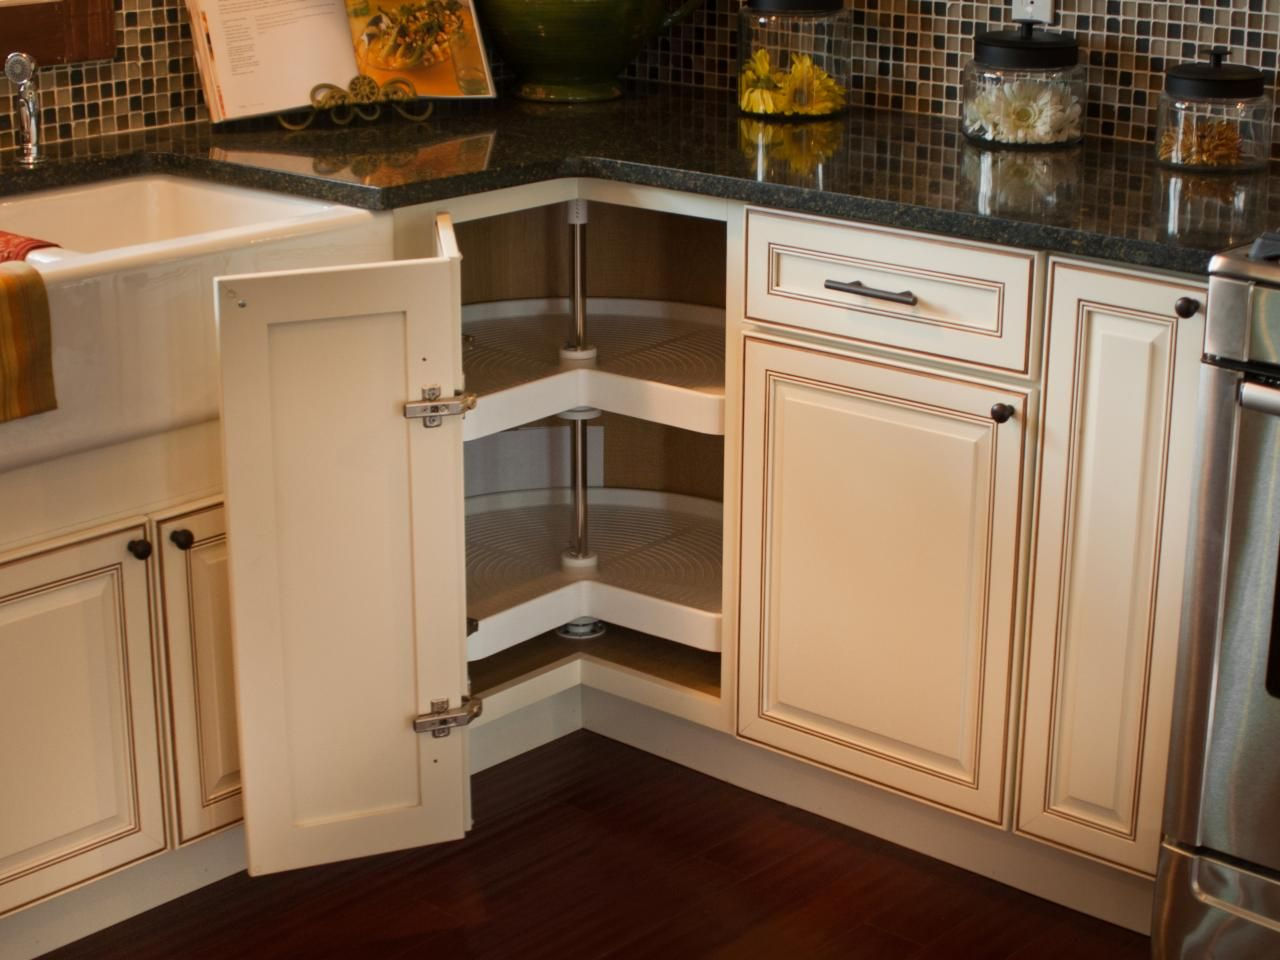 a corner cabinet door opens to reveal a kidney-shaped lazy susan